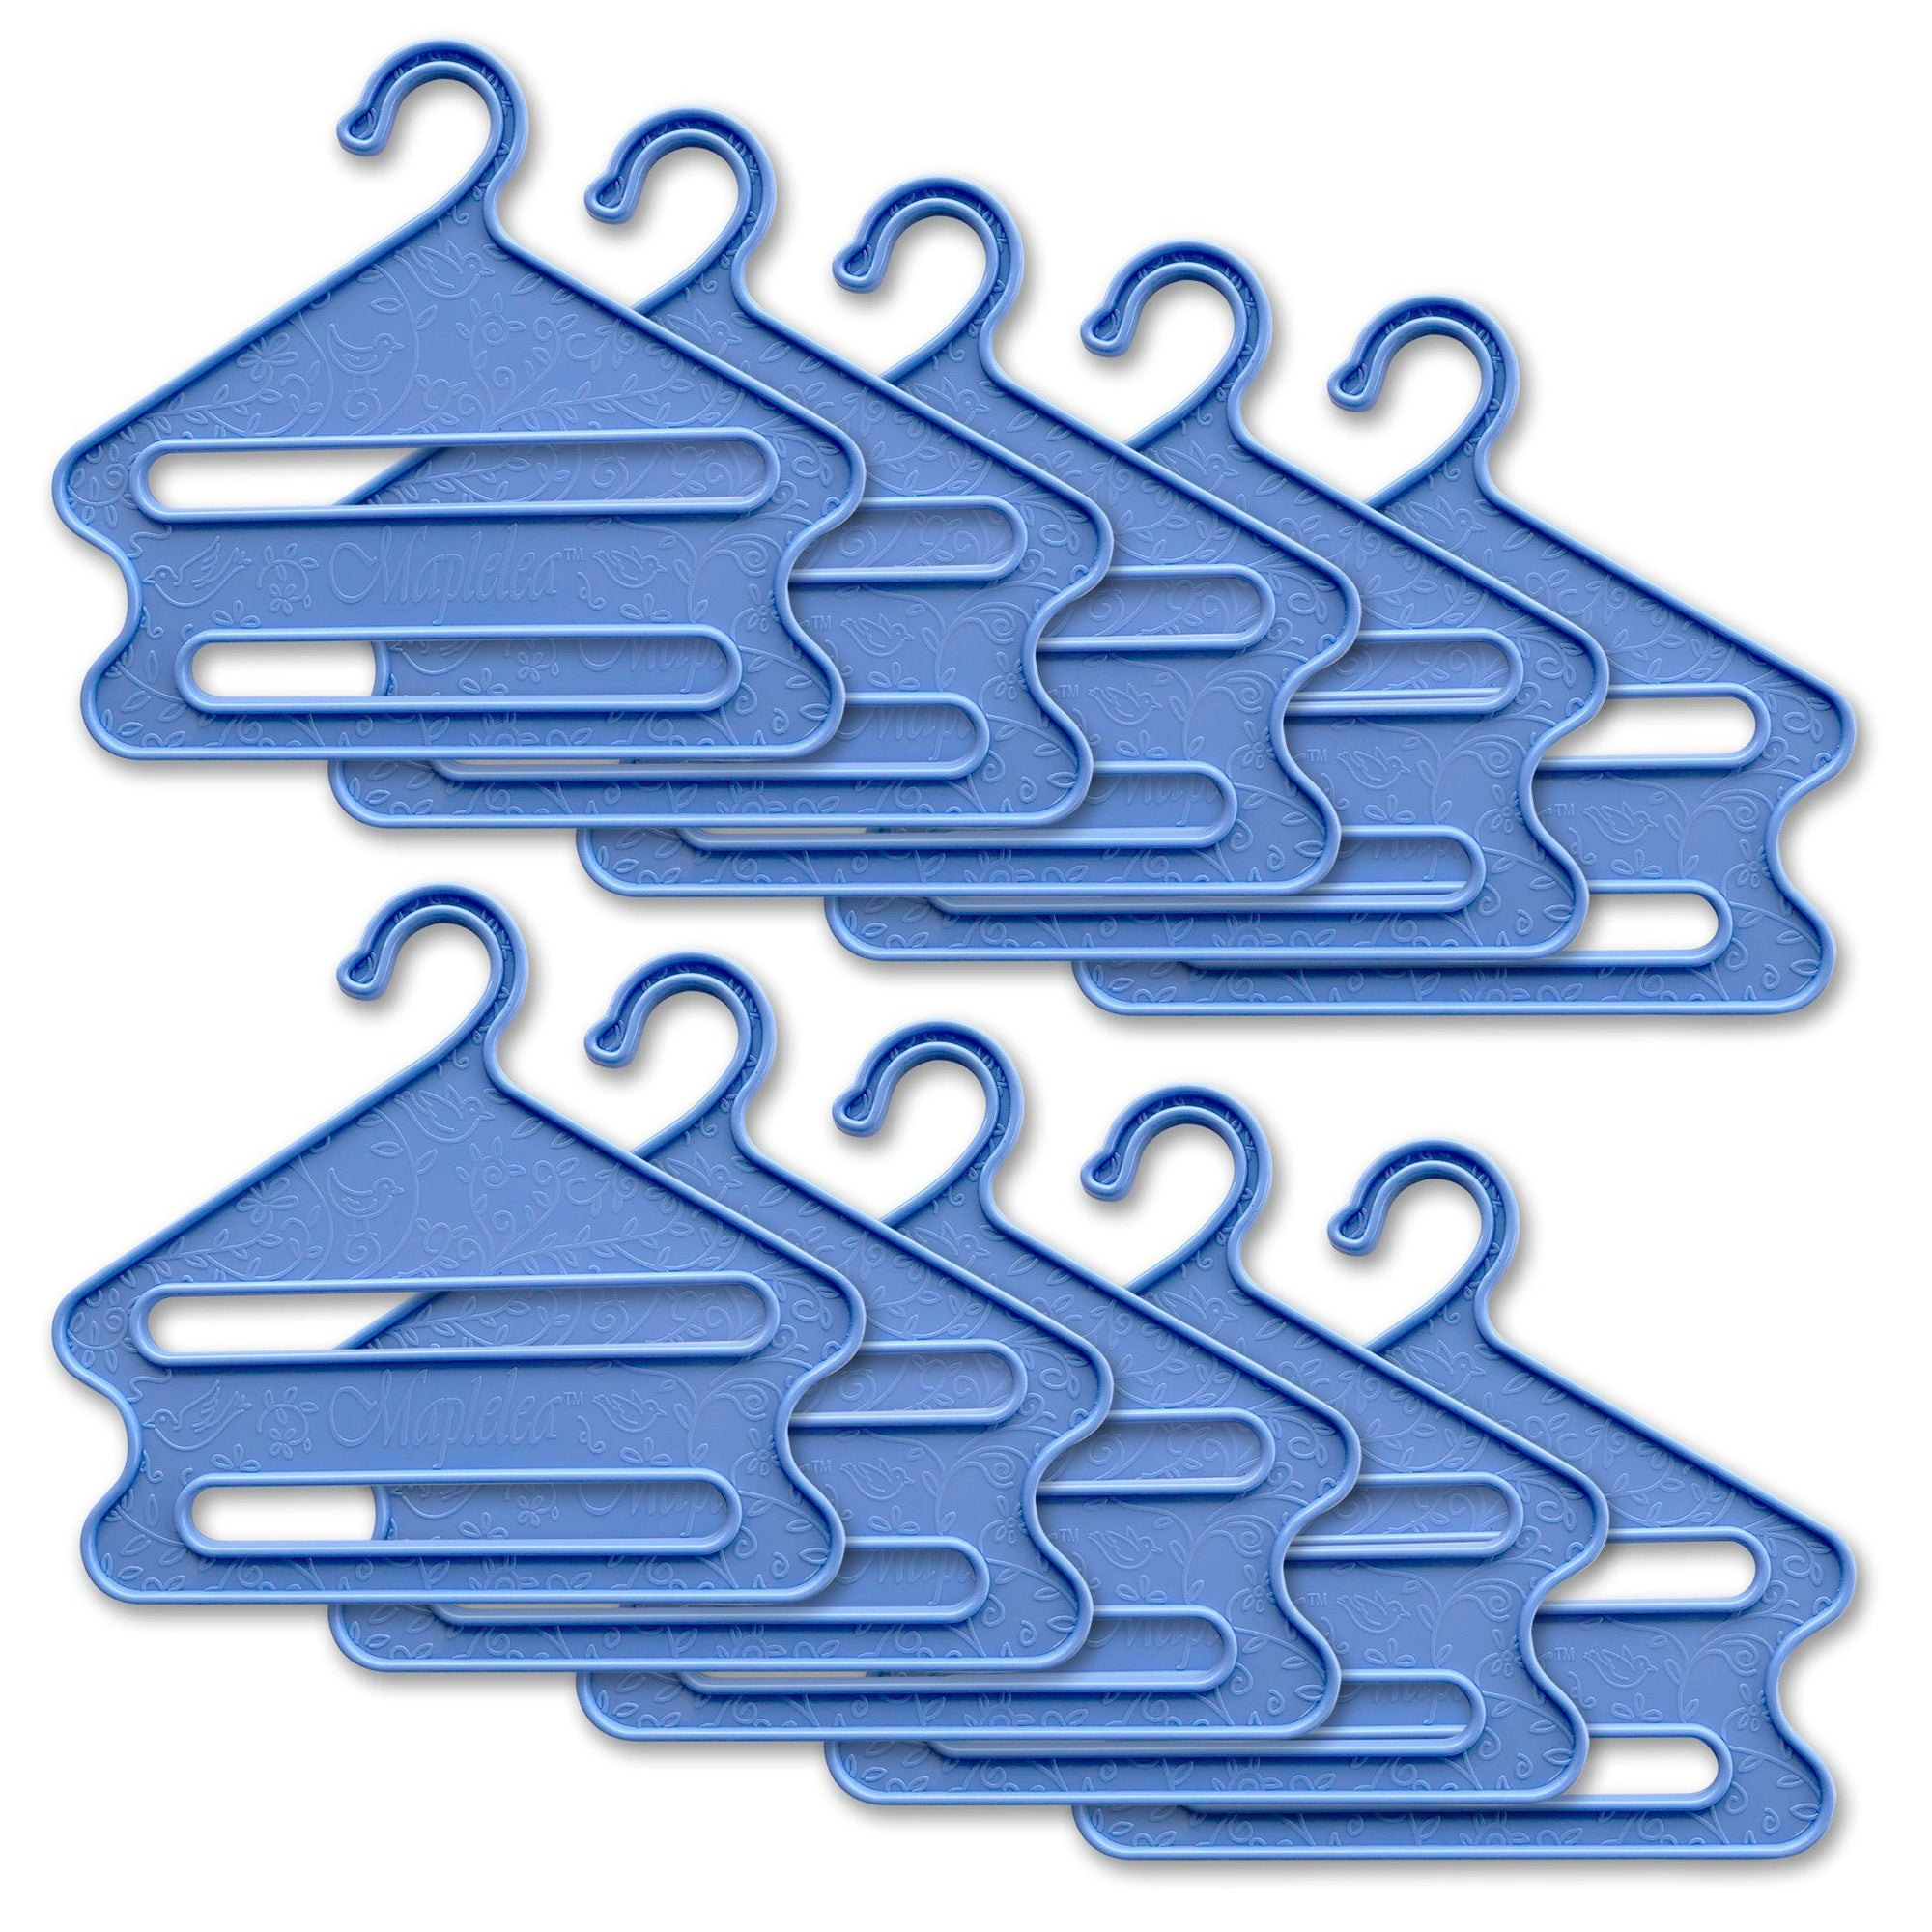 Maplelea Hangers (10 Pack)